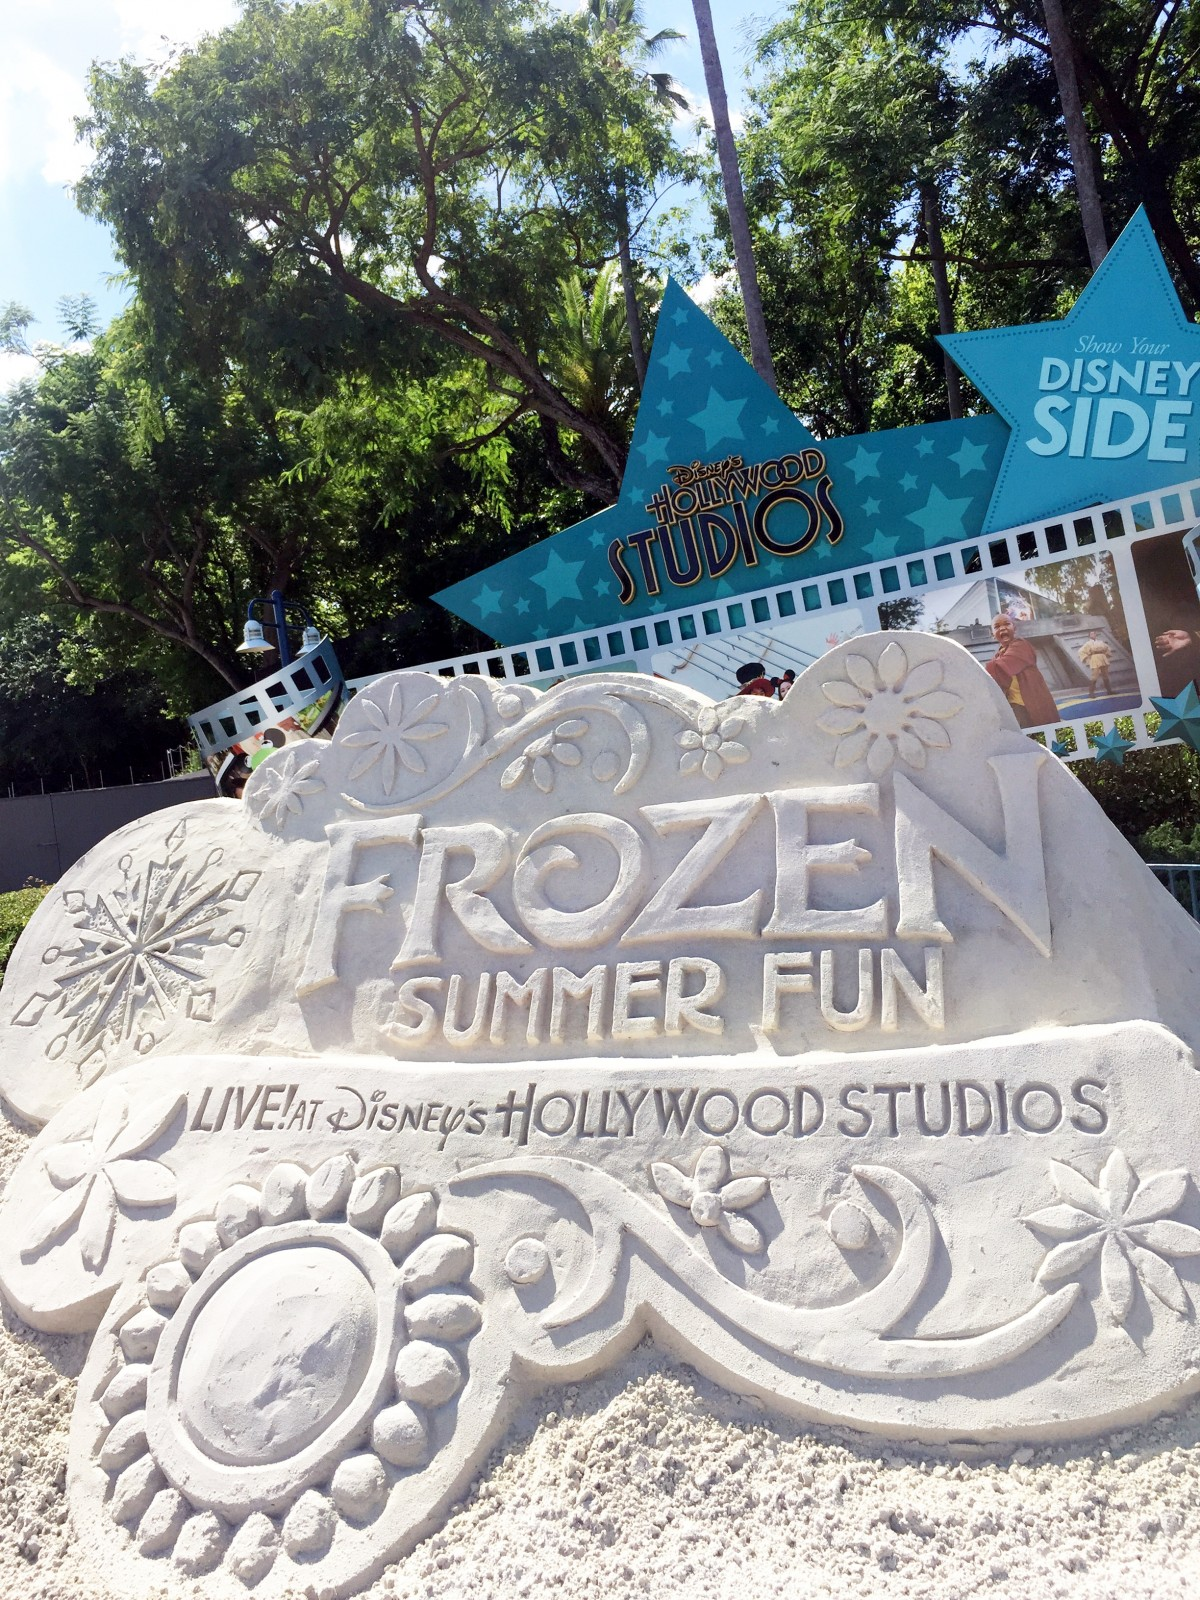 Frozen Summer Fun 2015 Disney's Hollywood Studios Walt Disney World